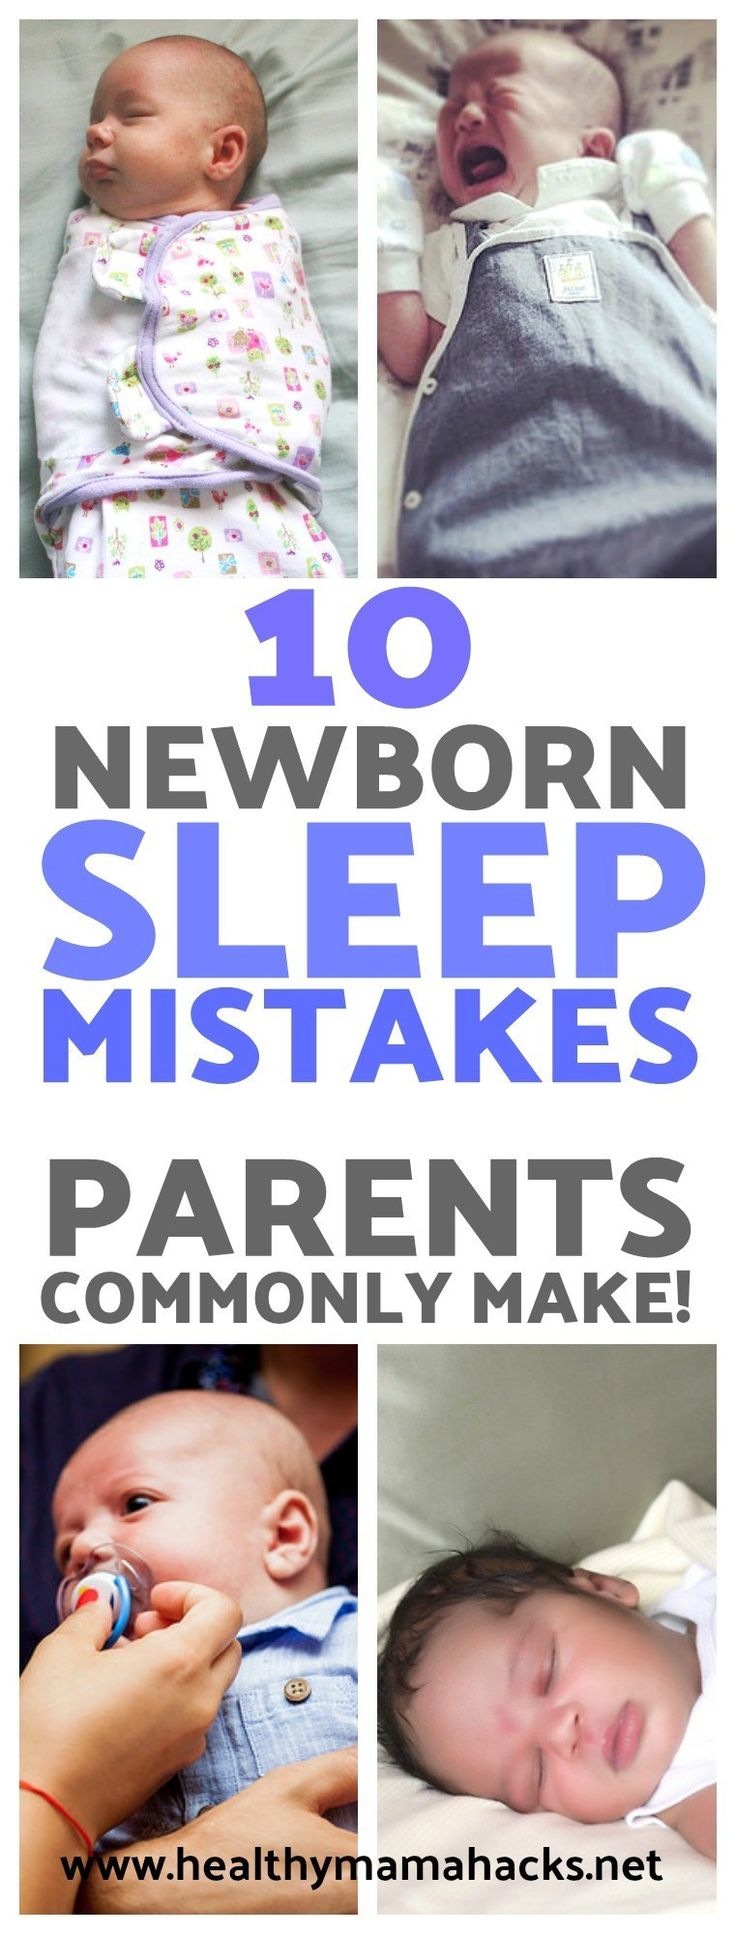 how to get infant to sleep in crib after co-sleeping